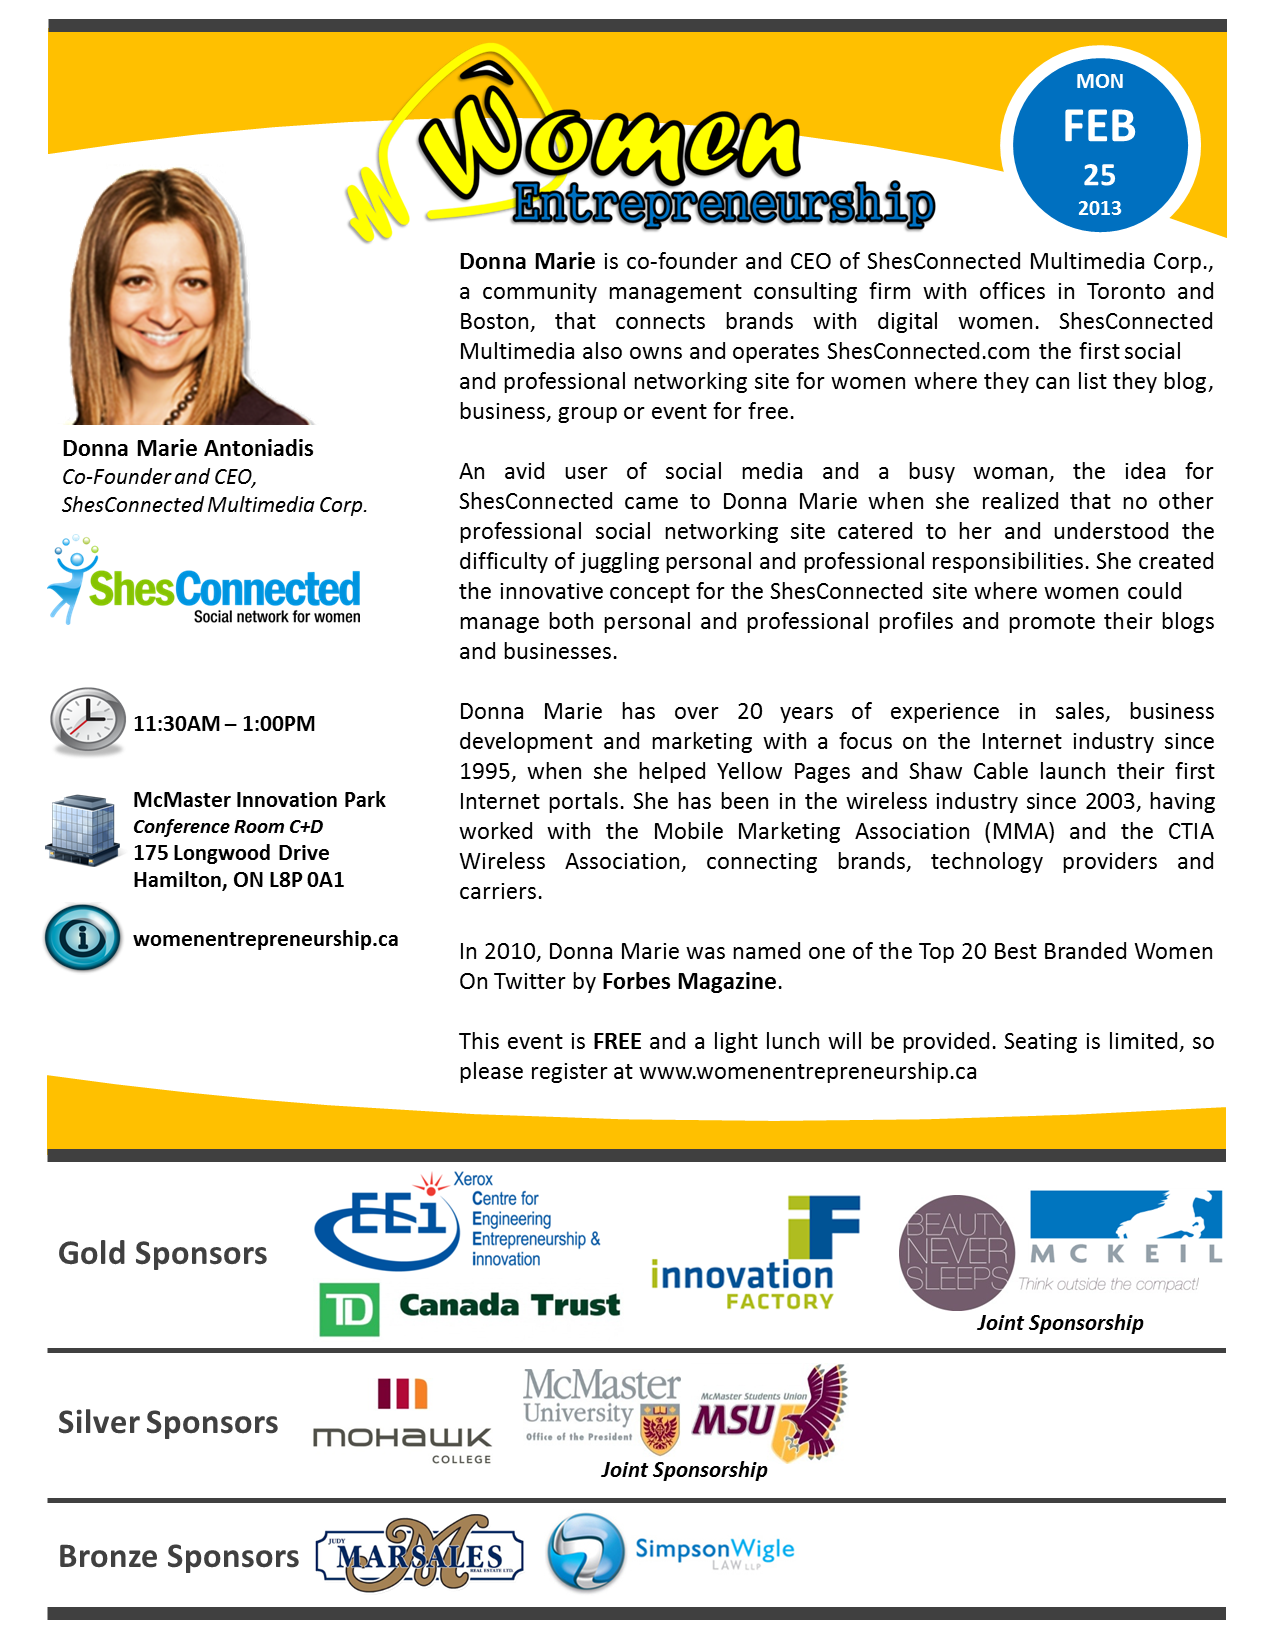 Women Entrepreneurship Flyer - Feb 25, 2013